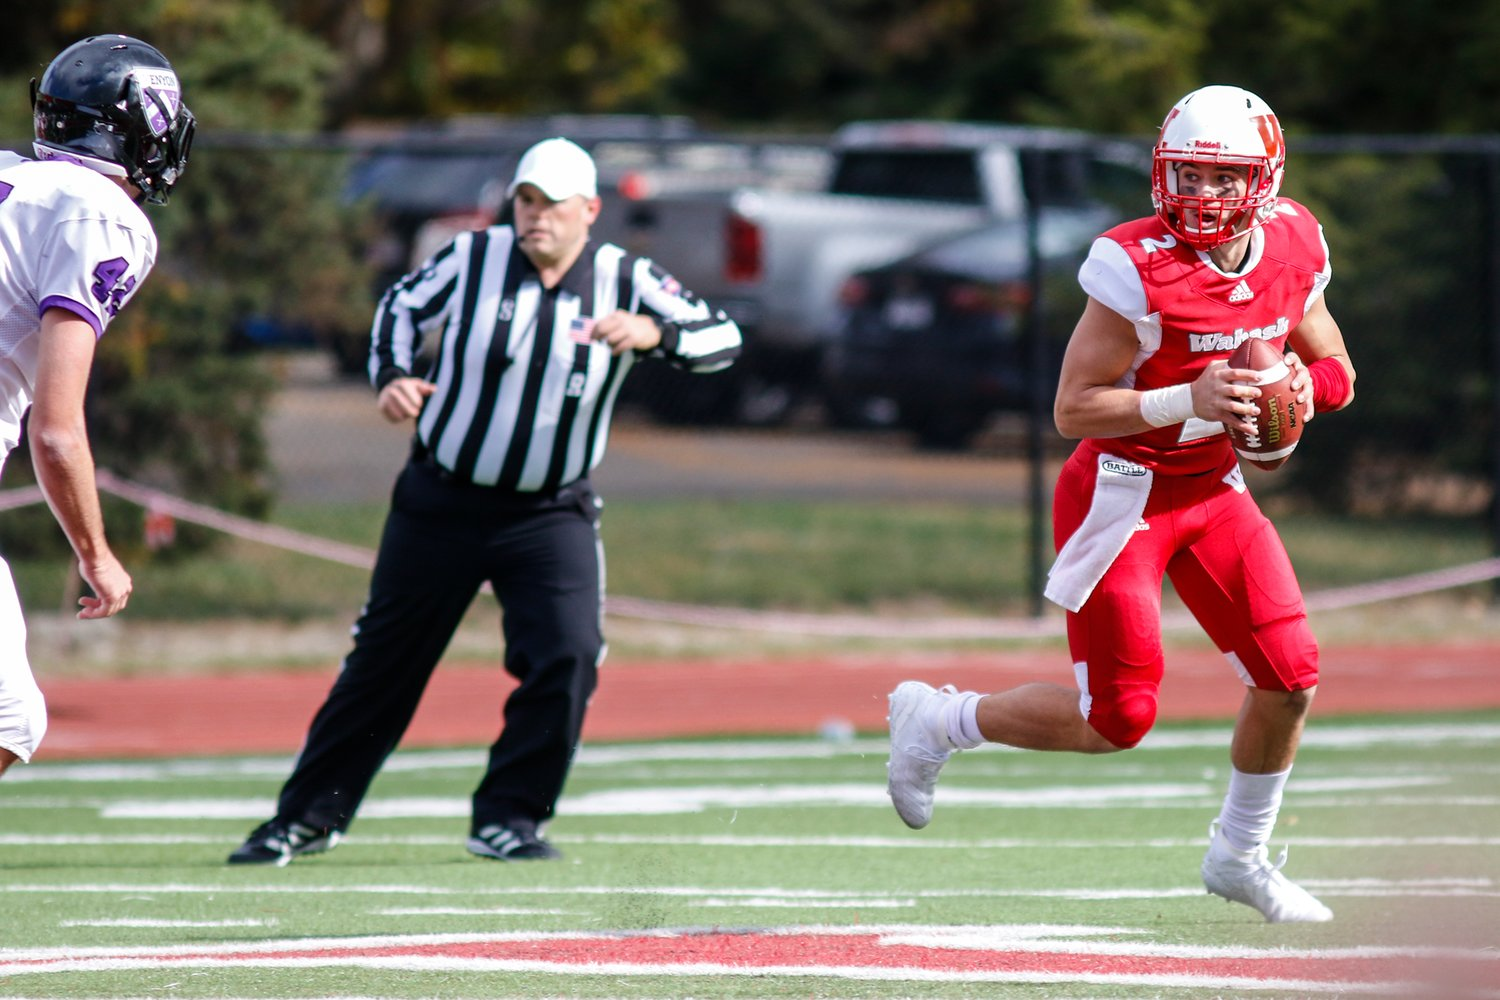 Wabash QB Liam Thompson looks downfield for an open receiver.